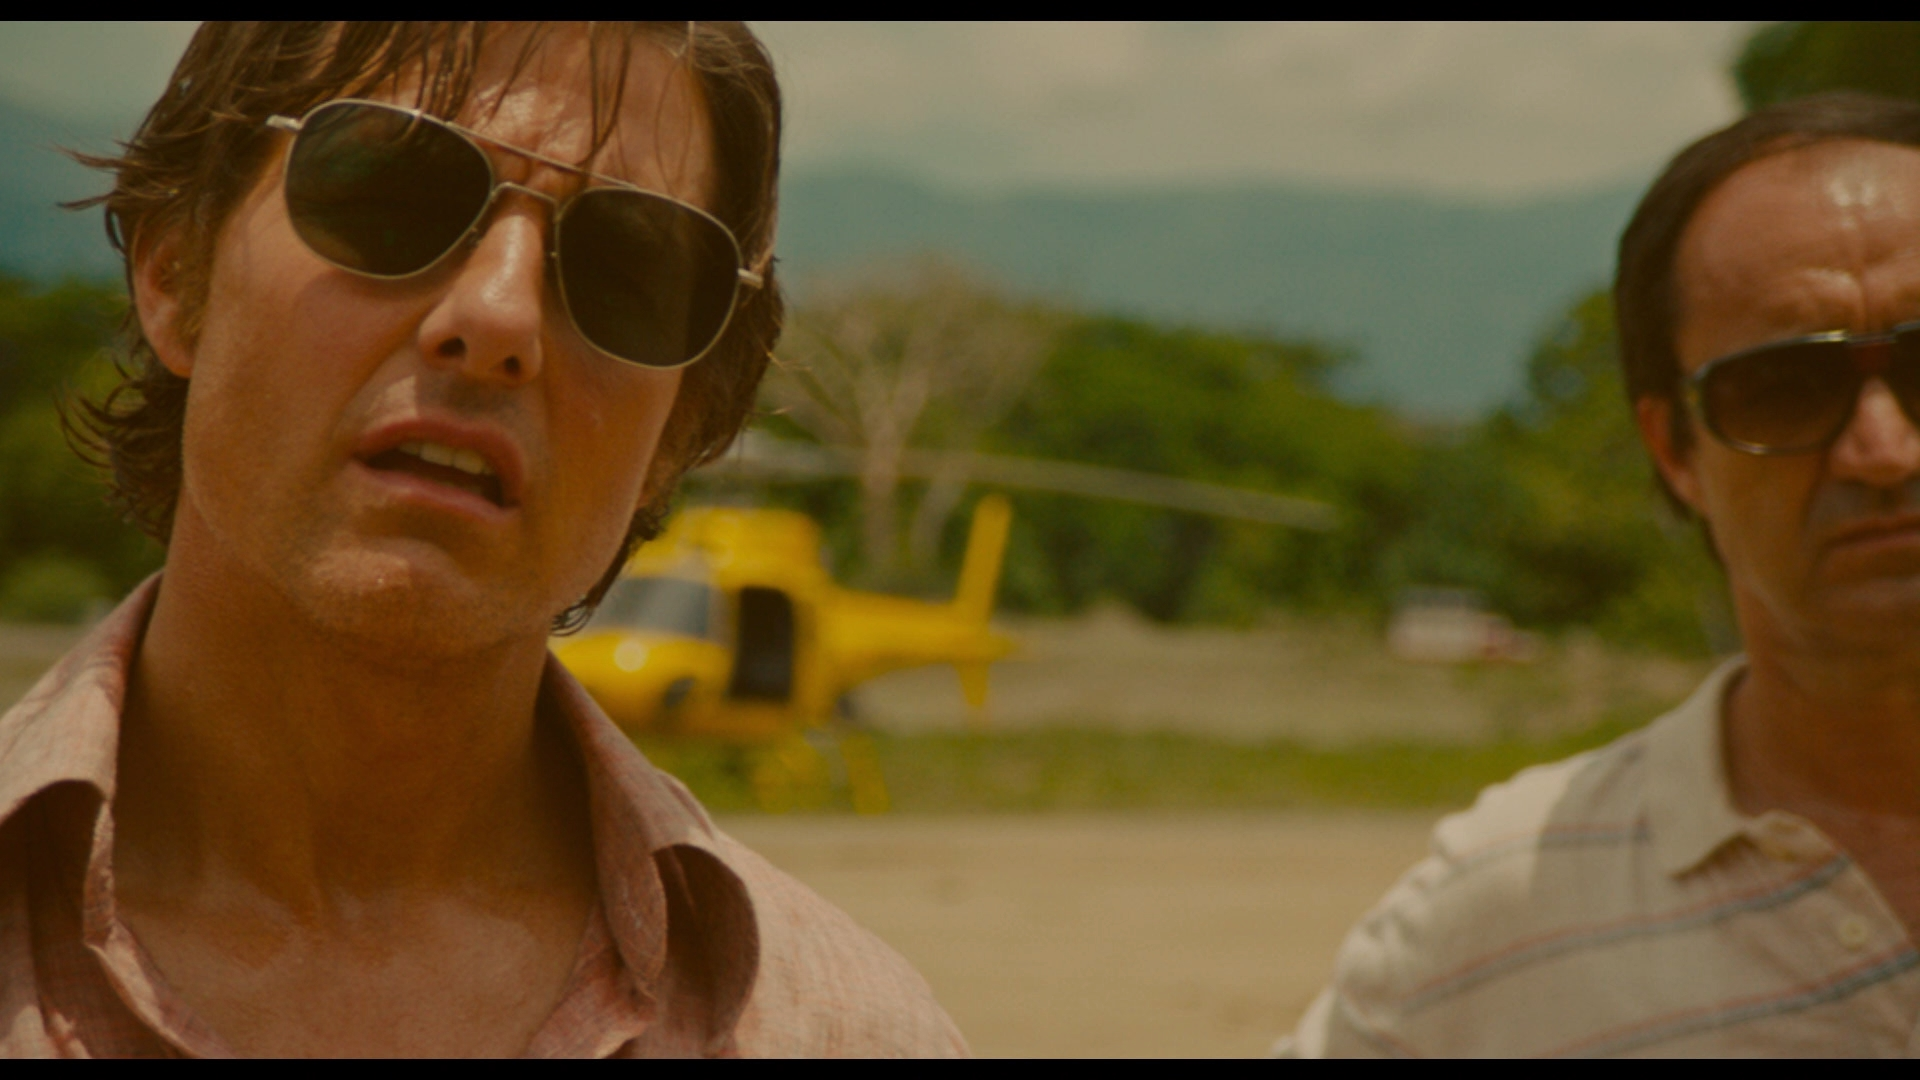 AMERICAN MADE (2017) - Barry Seal's (Tom Cruise) Costume - Image 23 of 23